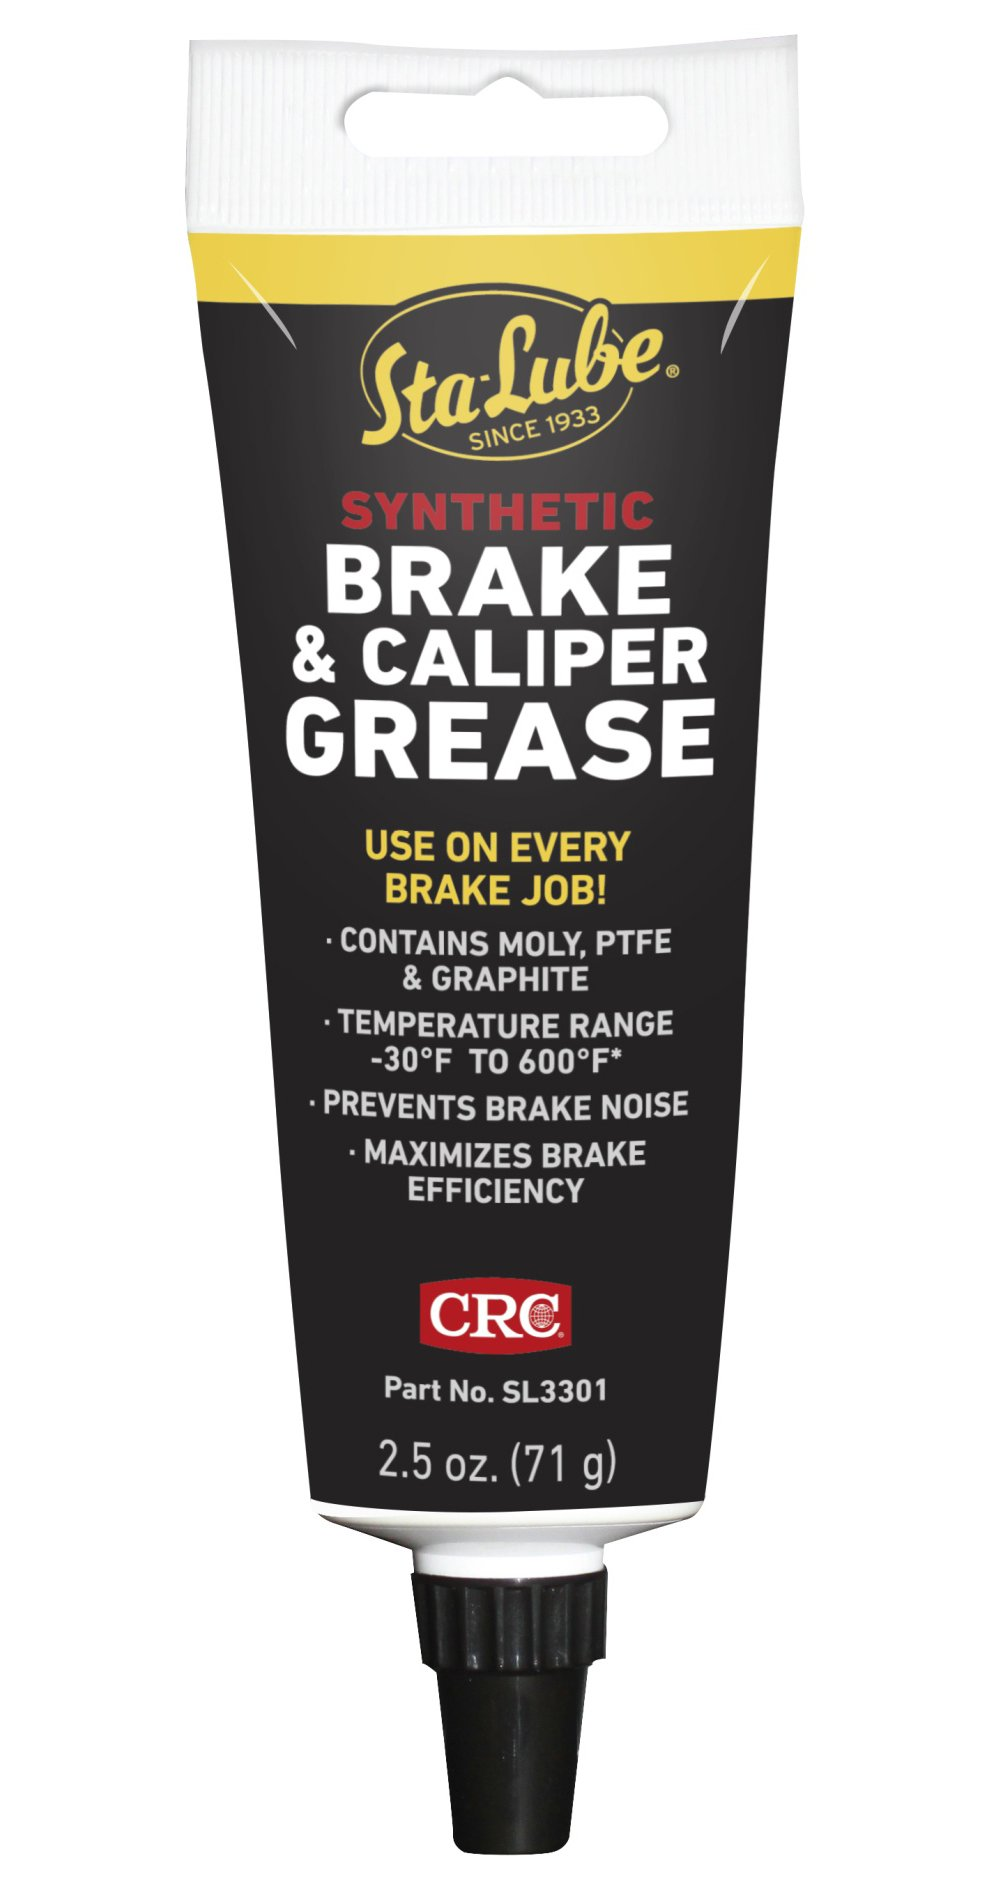 CRC SL33011 Synthetic Brake & Caliper Grease, 2.5 Wt Oz